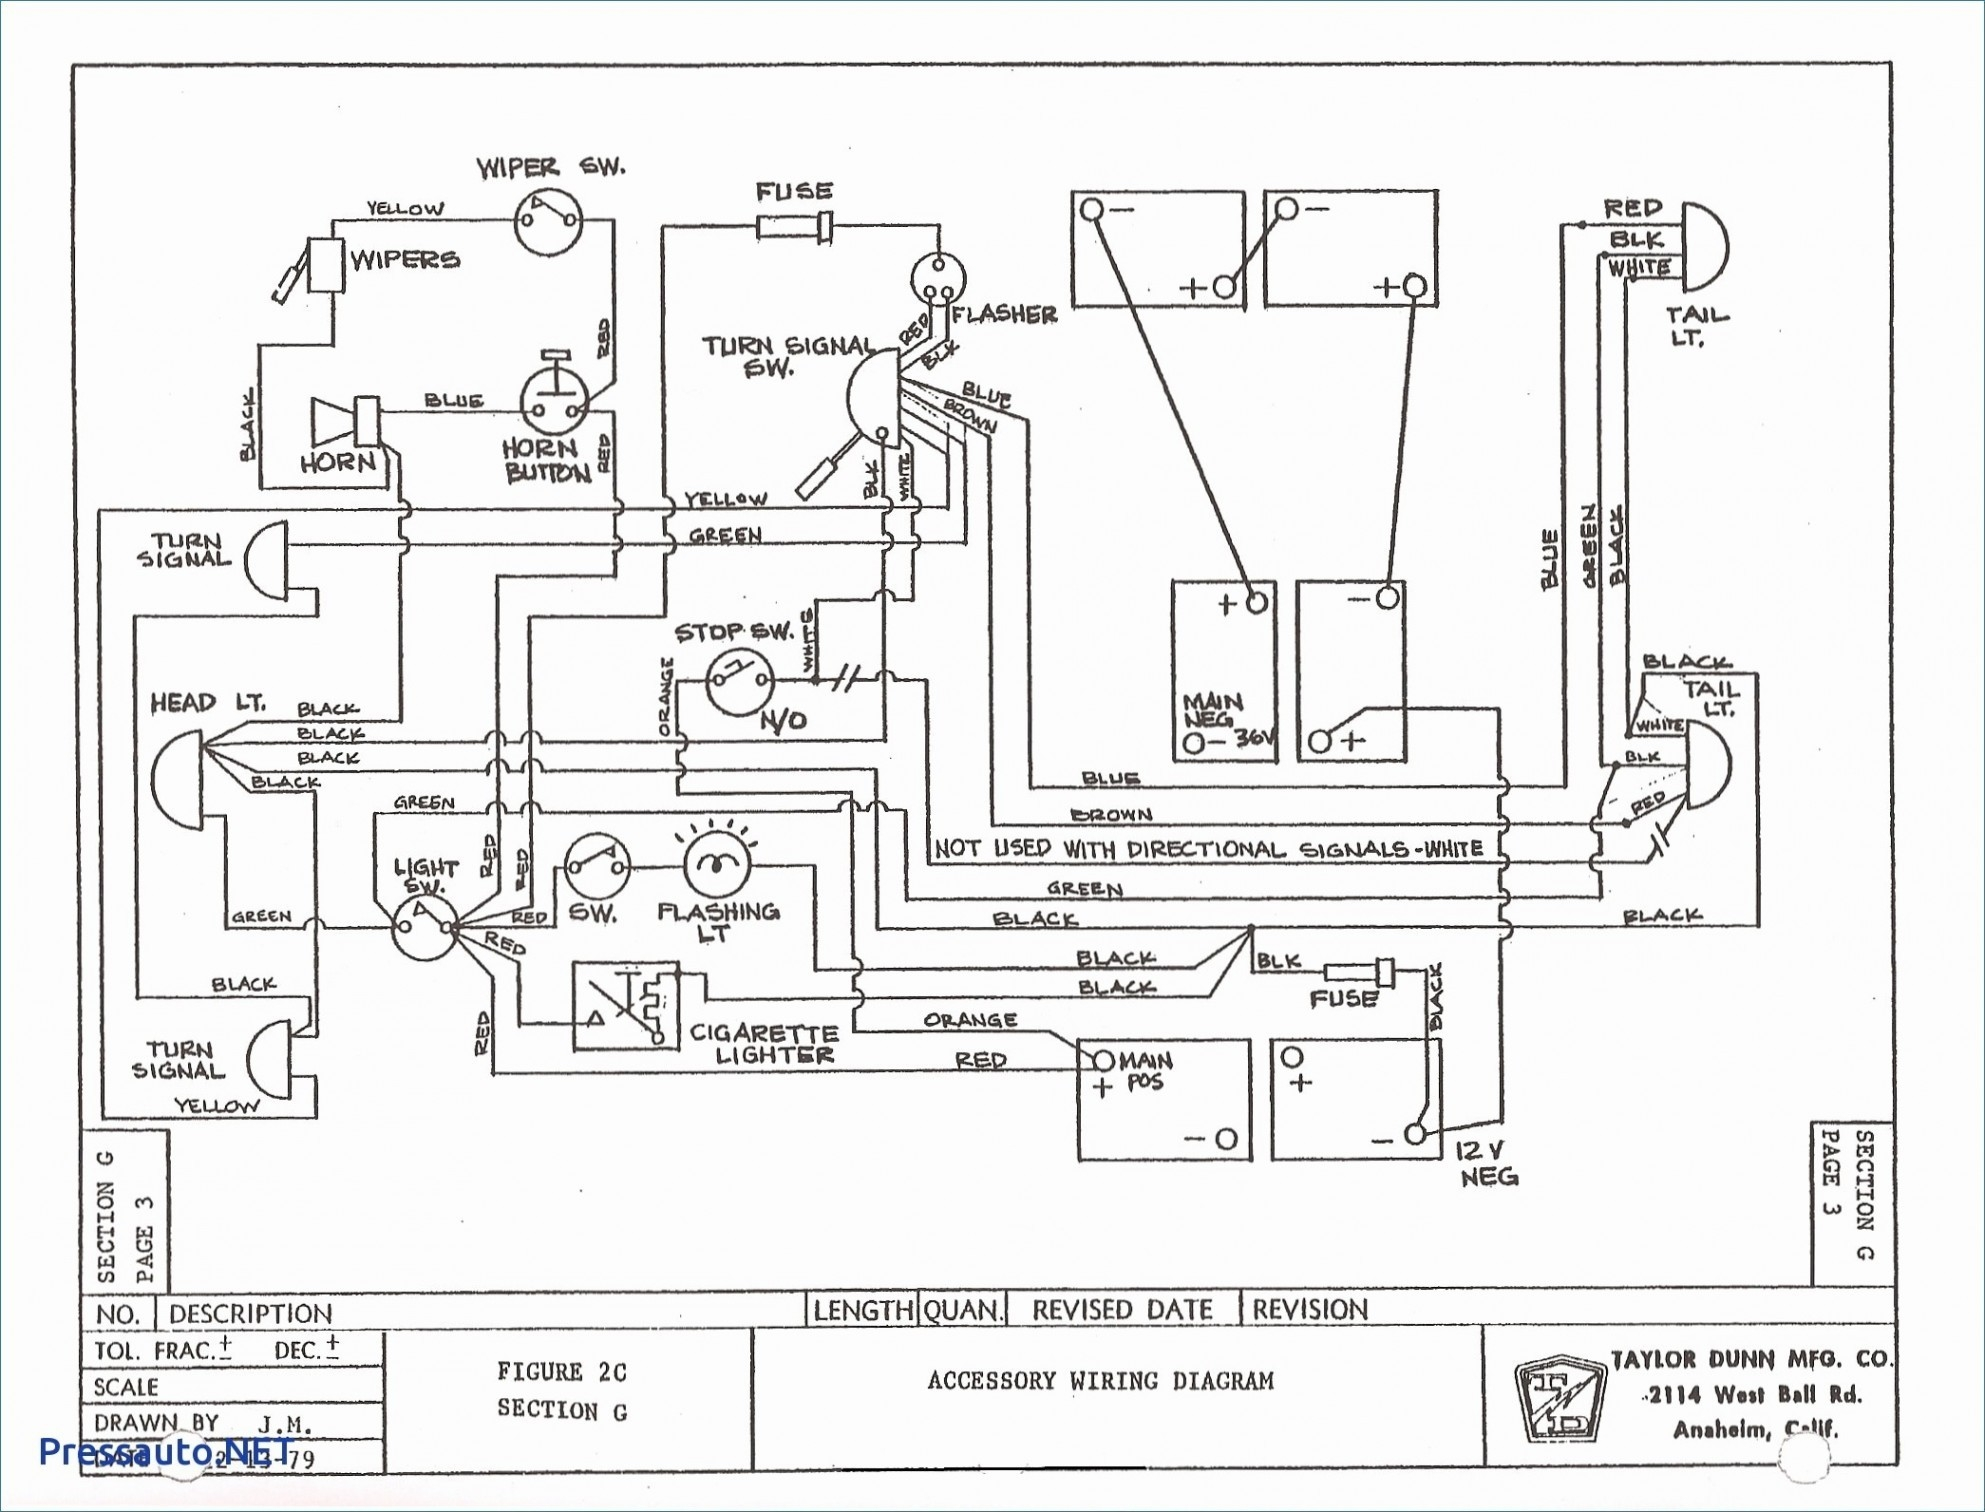 Taylor Dunn 36 Volt Wiring Diagram | Free Wiring Diagram